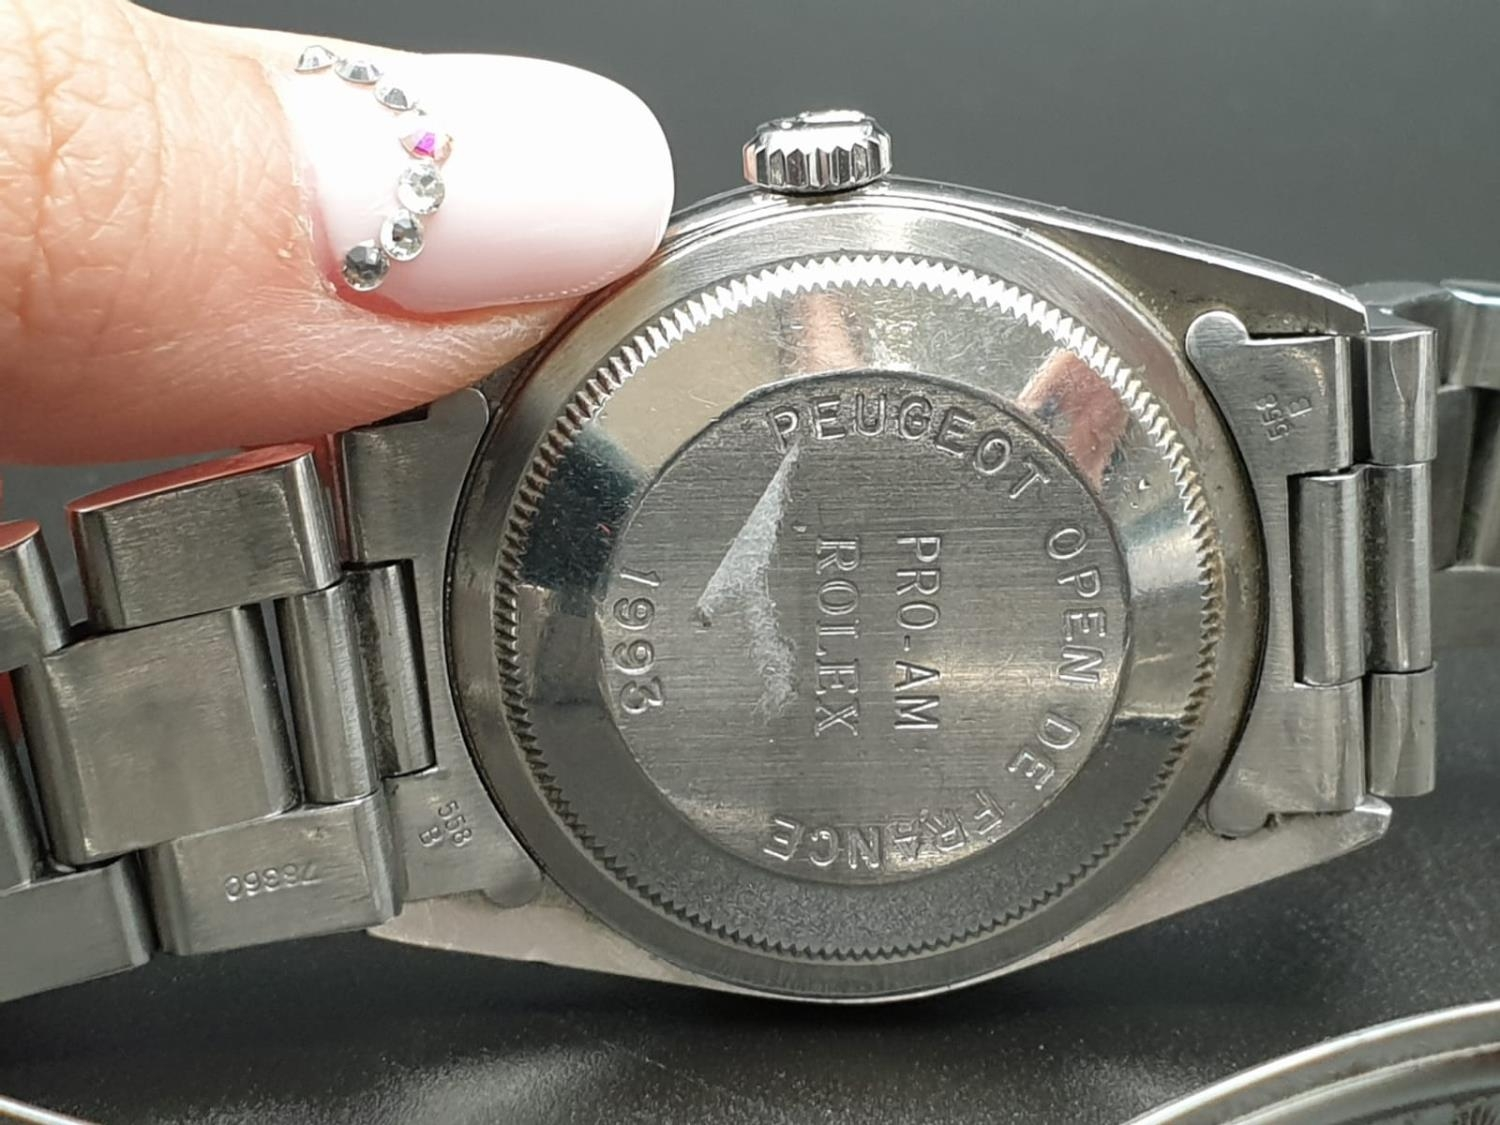 ROLEX OYSTER DATEJUST IN STAINLESS STEEL WITH ATTRACTIVE LIGHT OYSTER FACE, FWO 36MM - Image 9 of 10